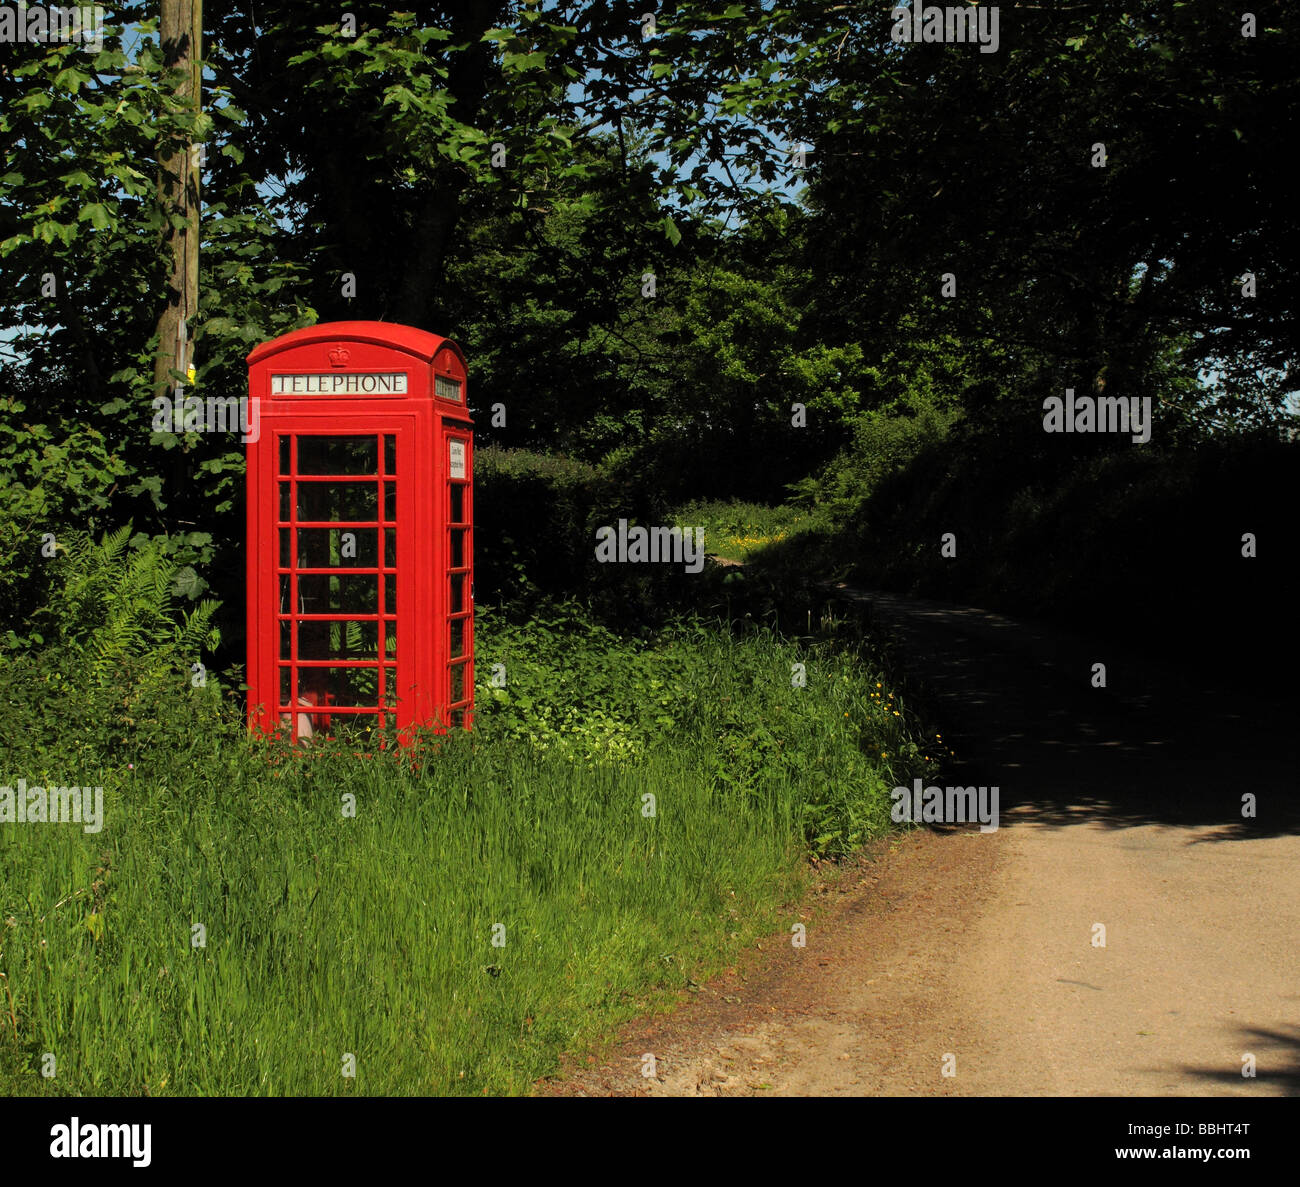 red telephone box - Stock Image